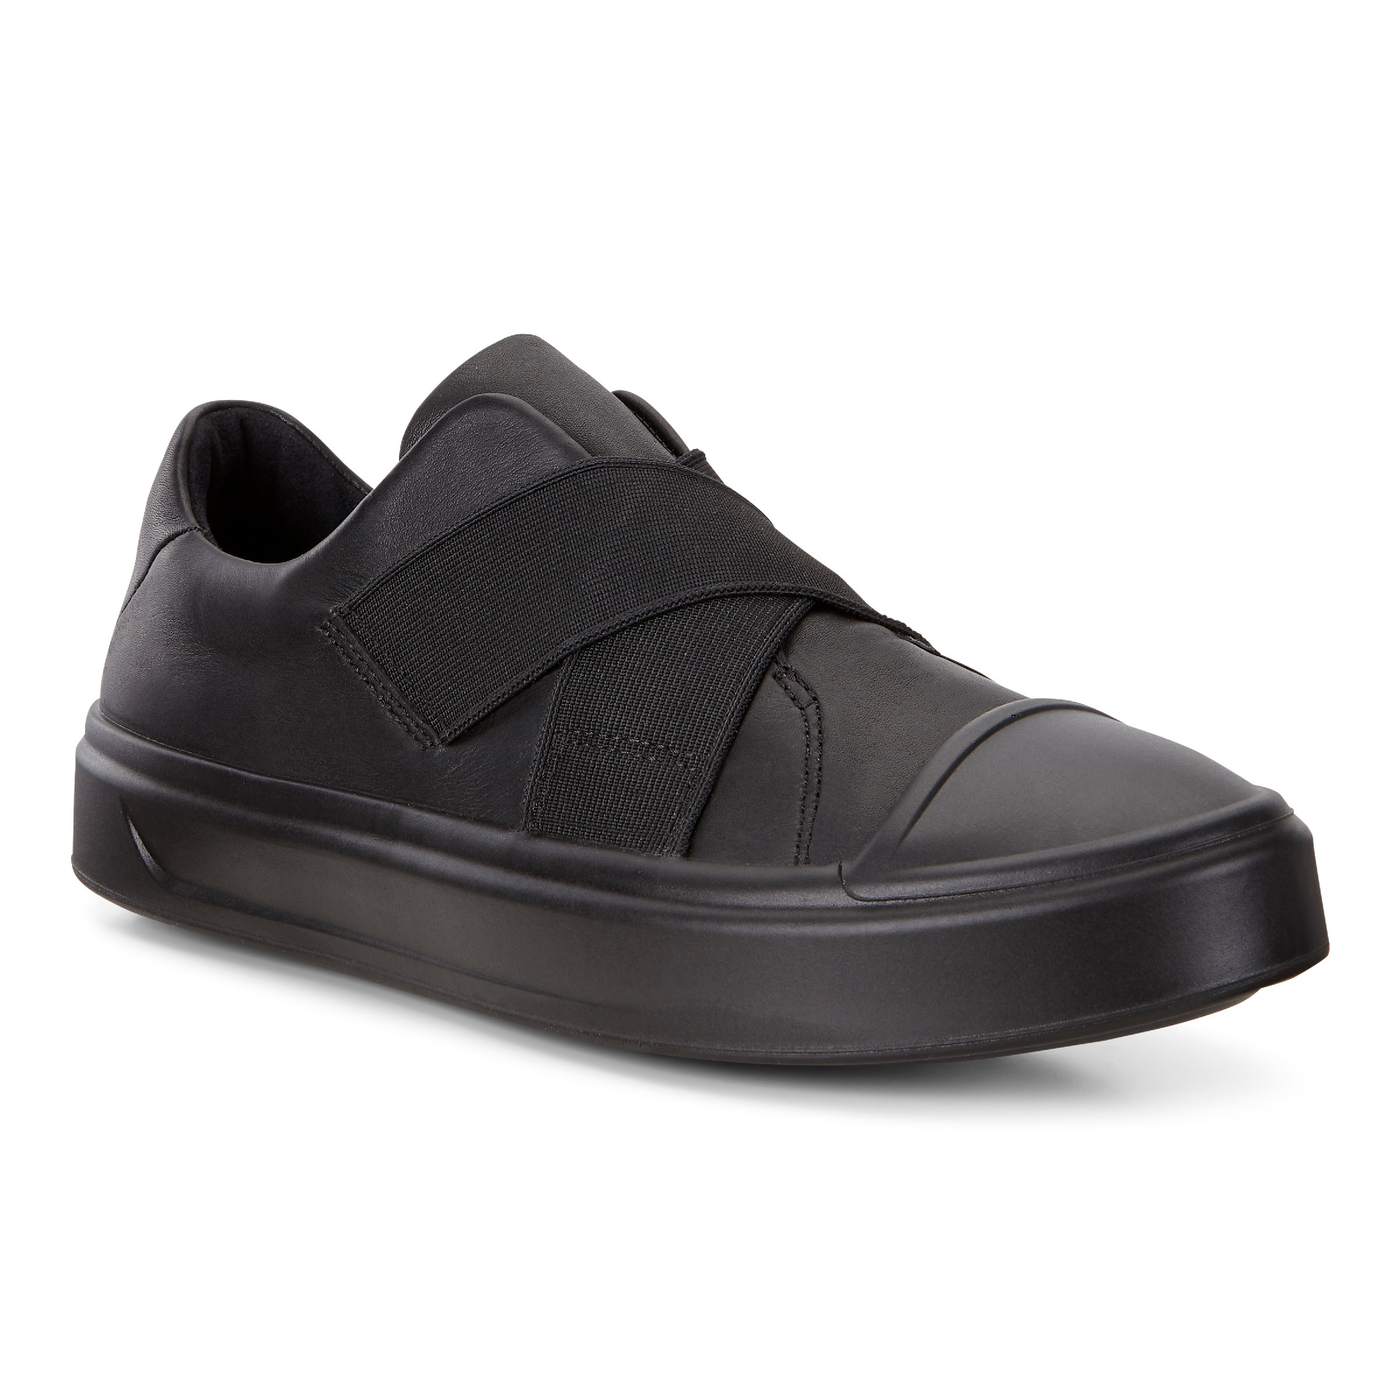 ECCO FLEXURE T-CAP Womens Slip On